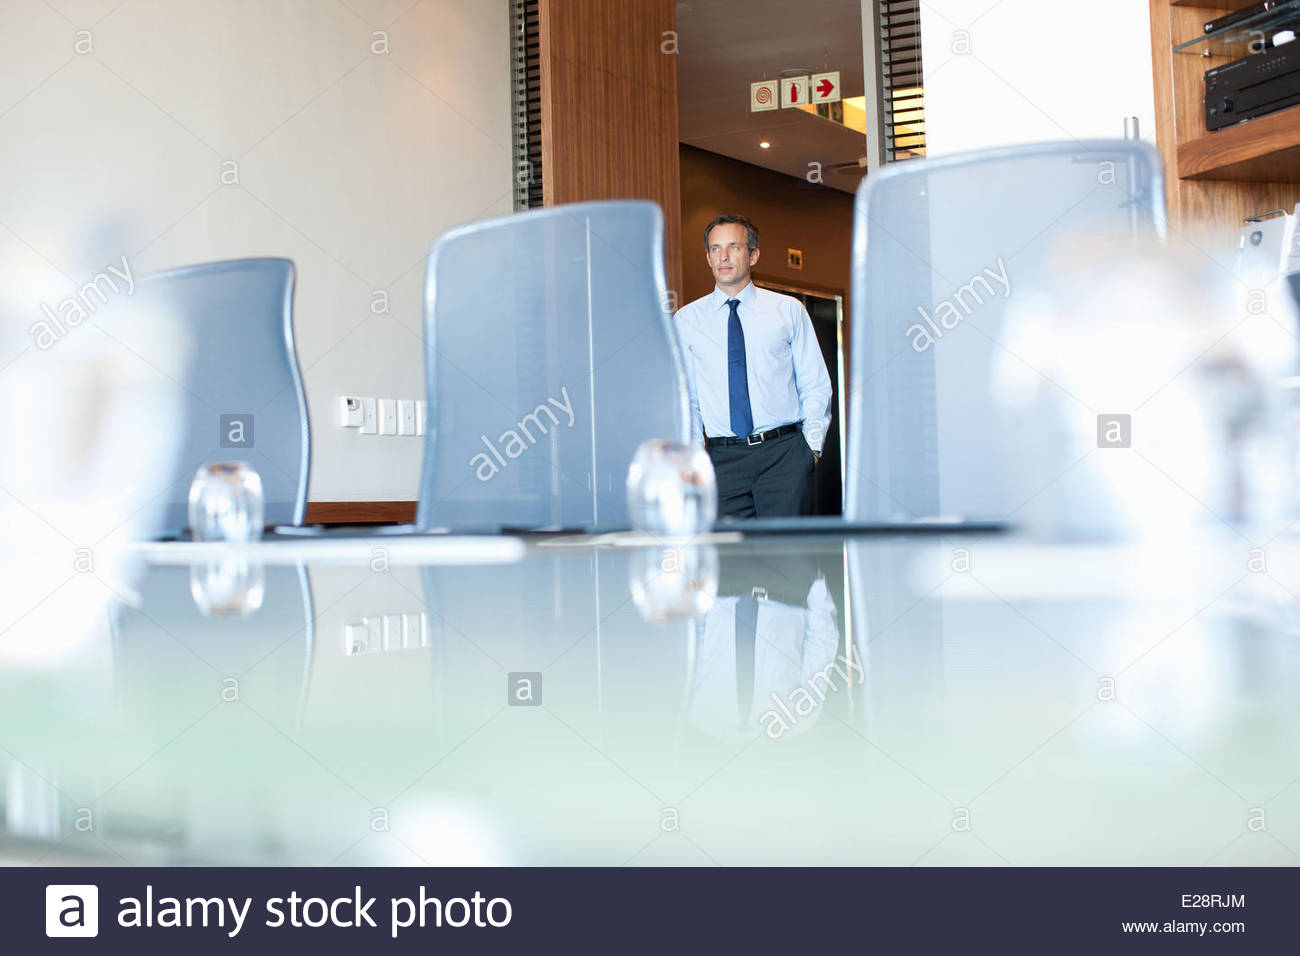 Businessman entering conference room - Stock Image